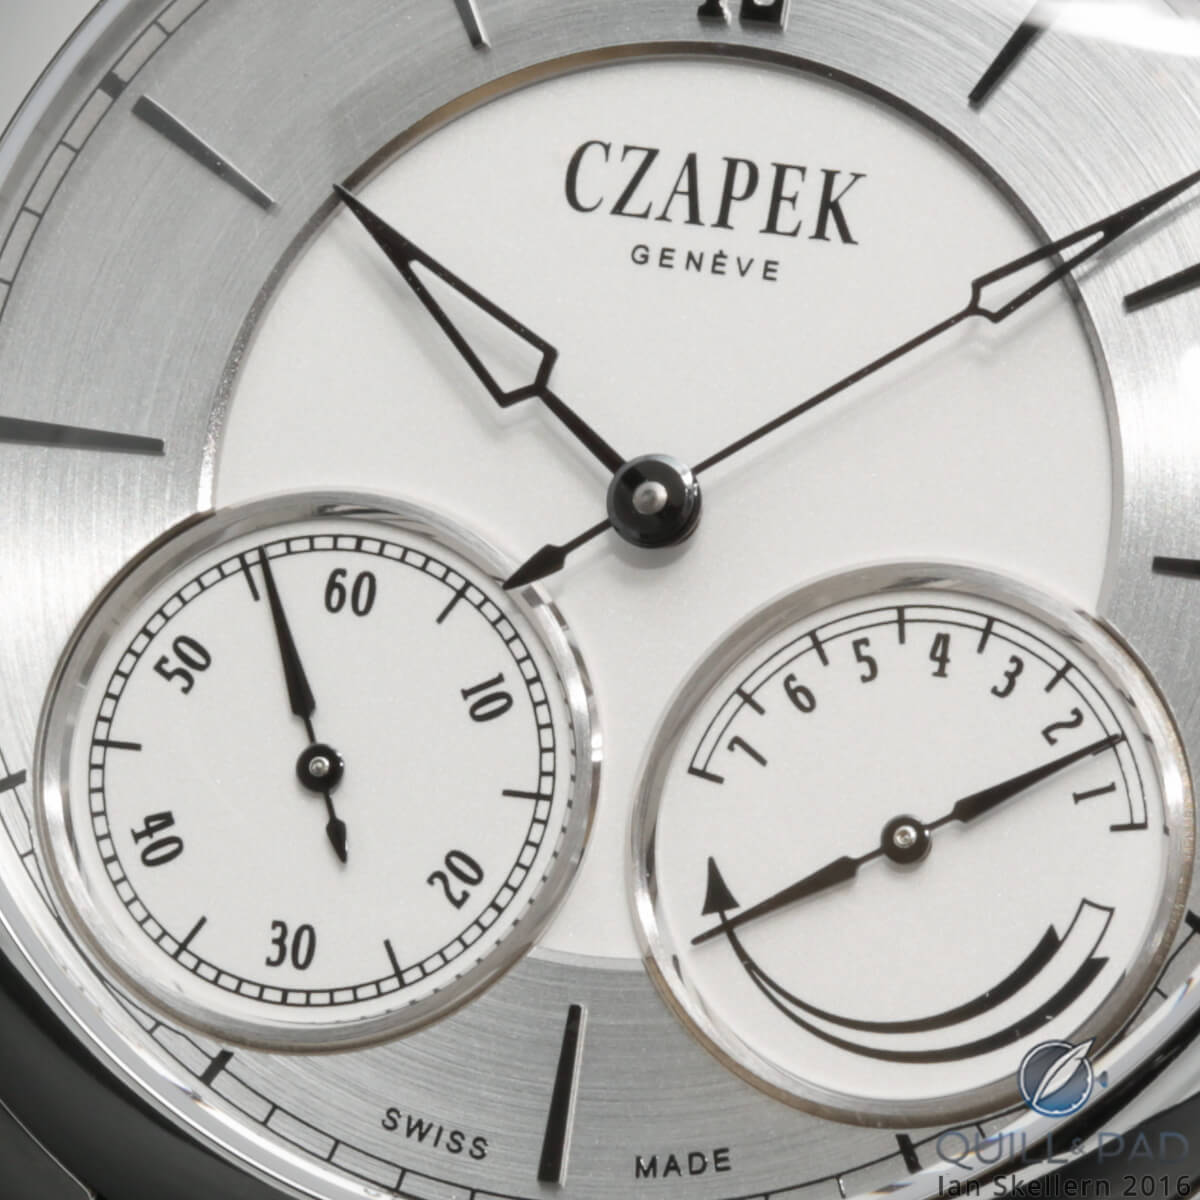 Close up look at the multi-layed dial of the Czapek & Cie. in steel from the Quai des Bergues collection